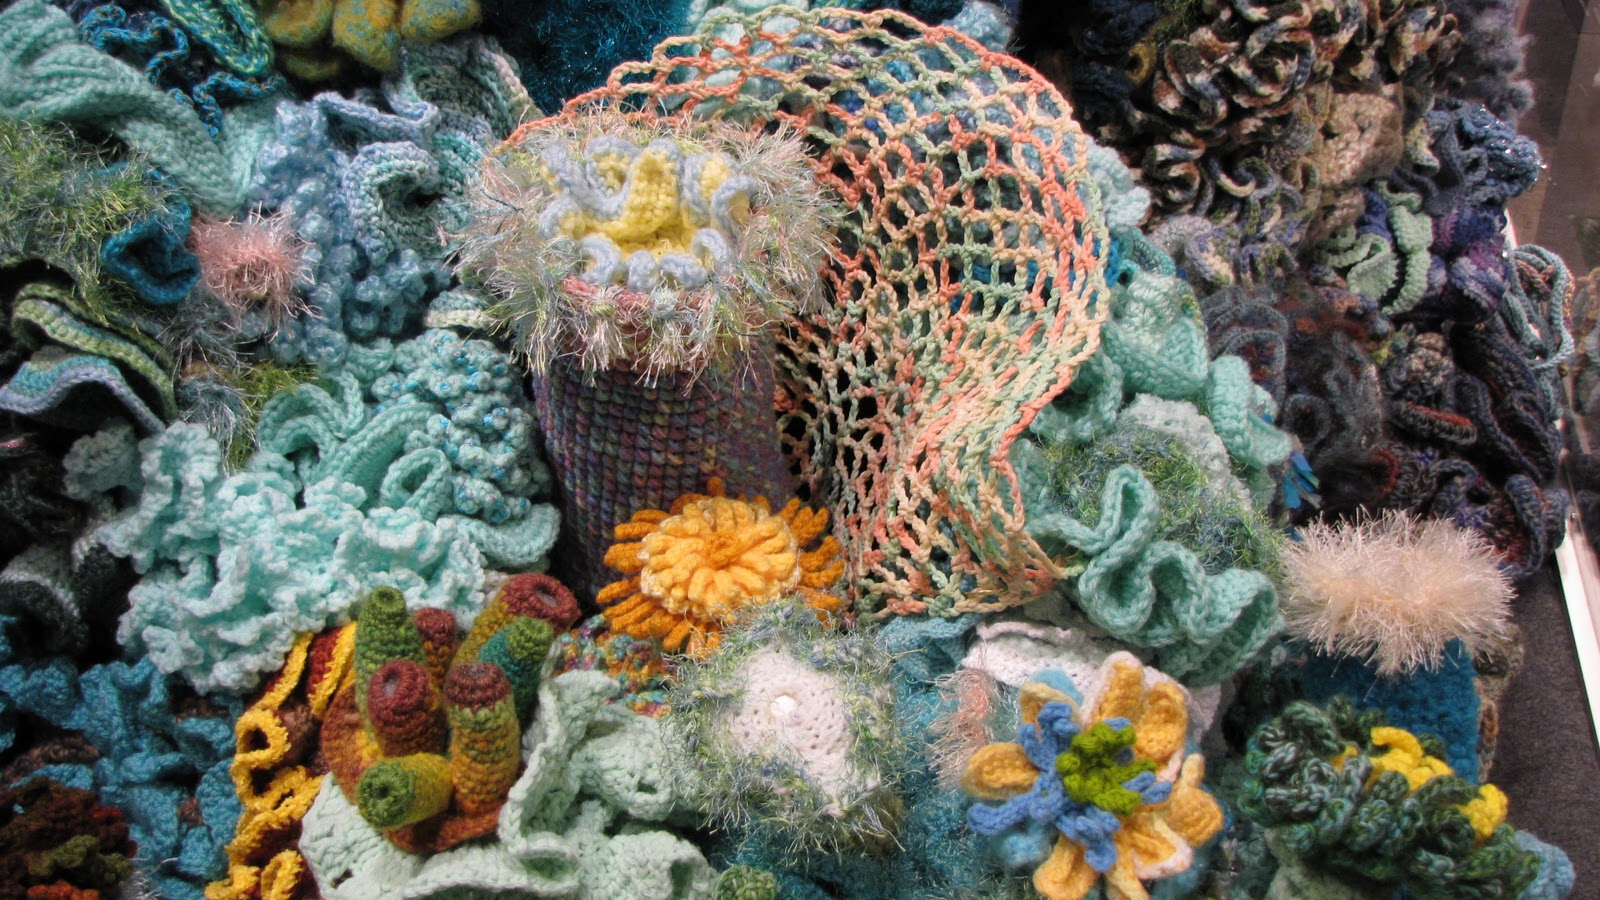 Crochet Coral Reef : The Saipan Blog: Hyperbolic Crochet Coral Reef Now Open!